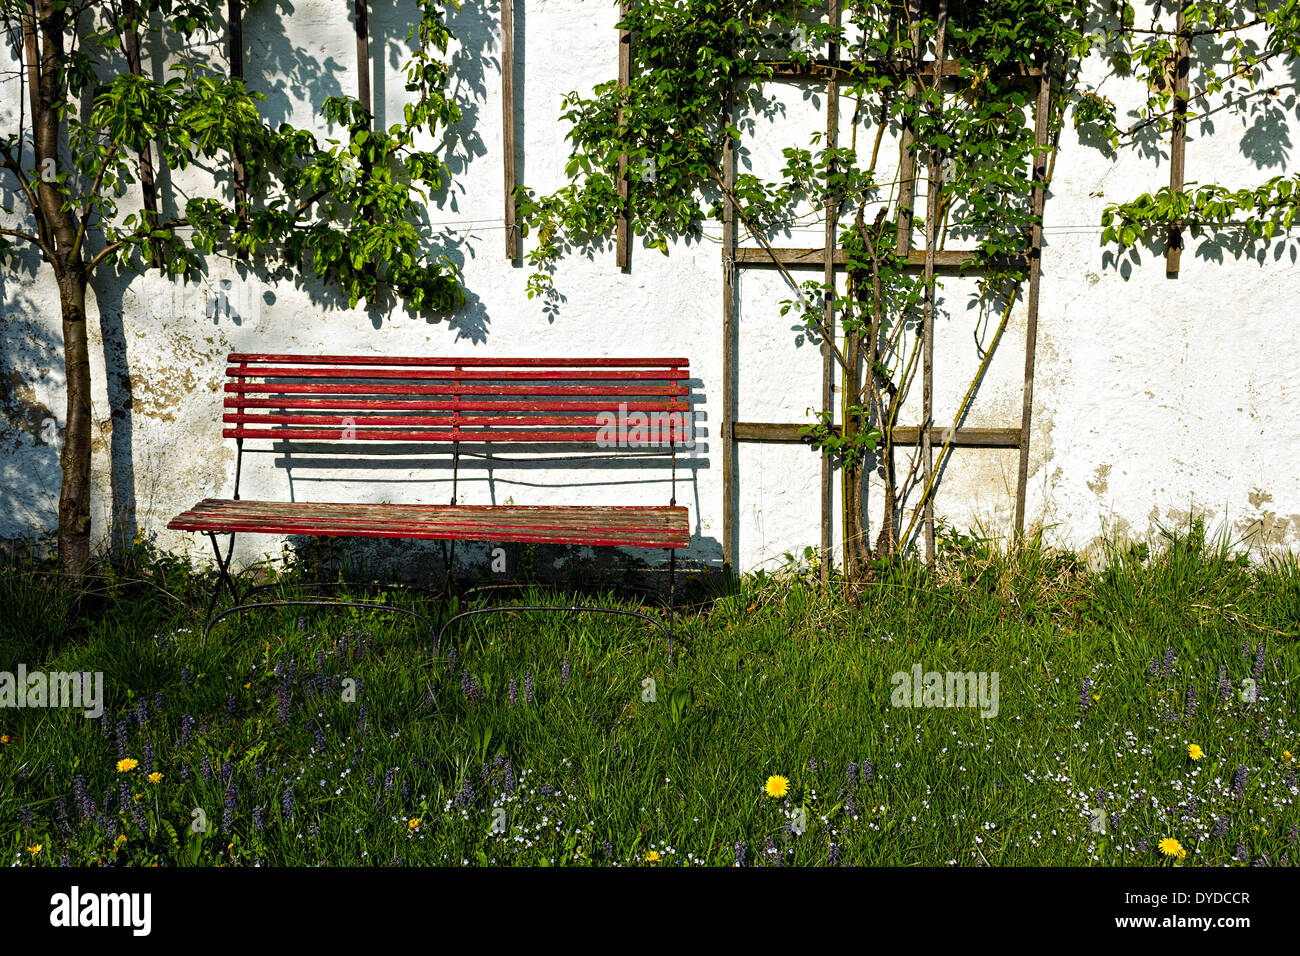 Sensational Old Red Wood Bench Seat Against White Wall In Garden Upper Gmtry Best Dining Table And Chair Ideas Images Gmtryco